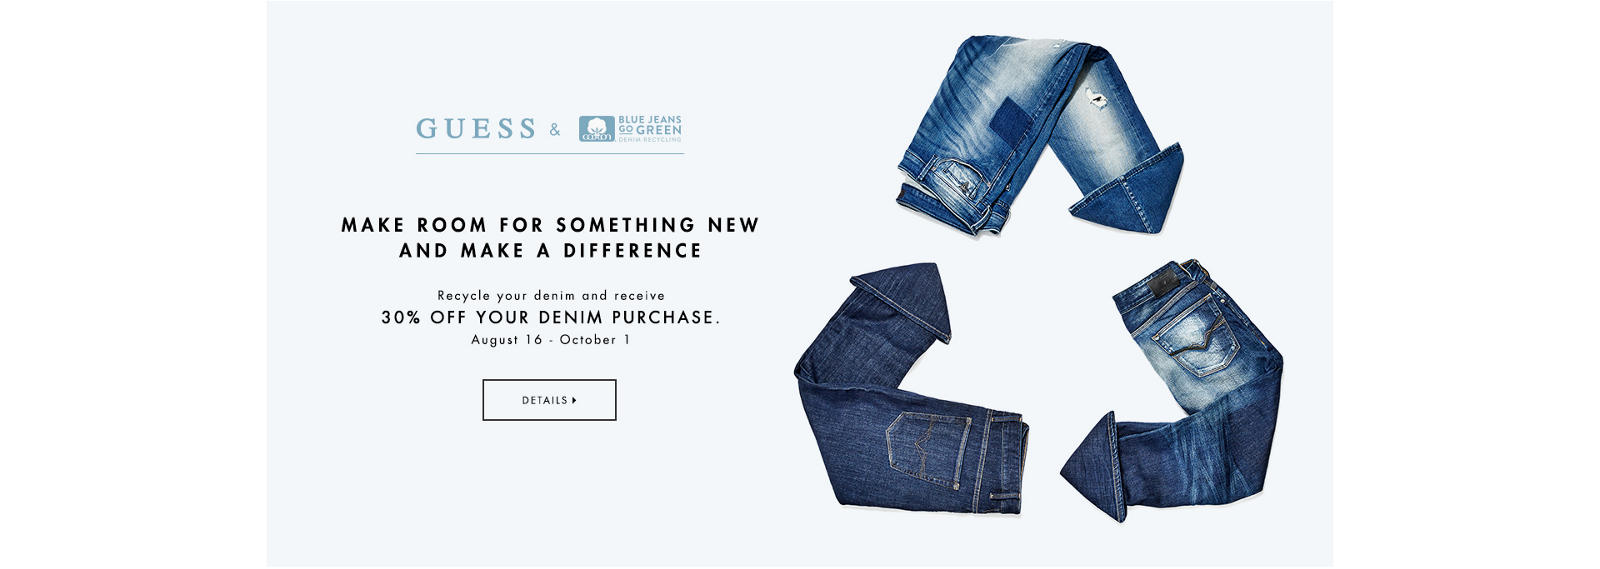 Make room for something new and make a difference: Denim Recycling